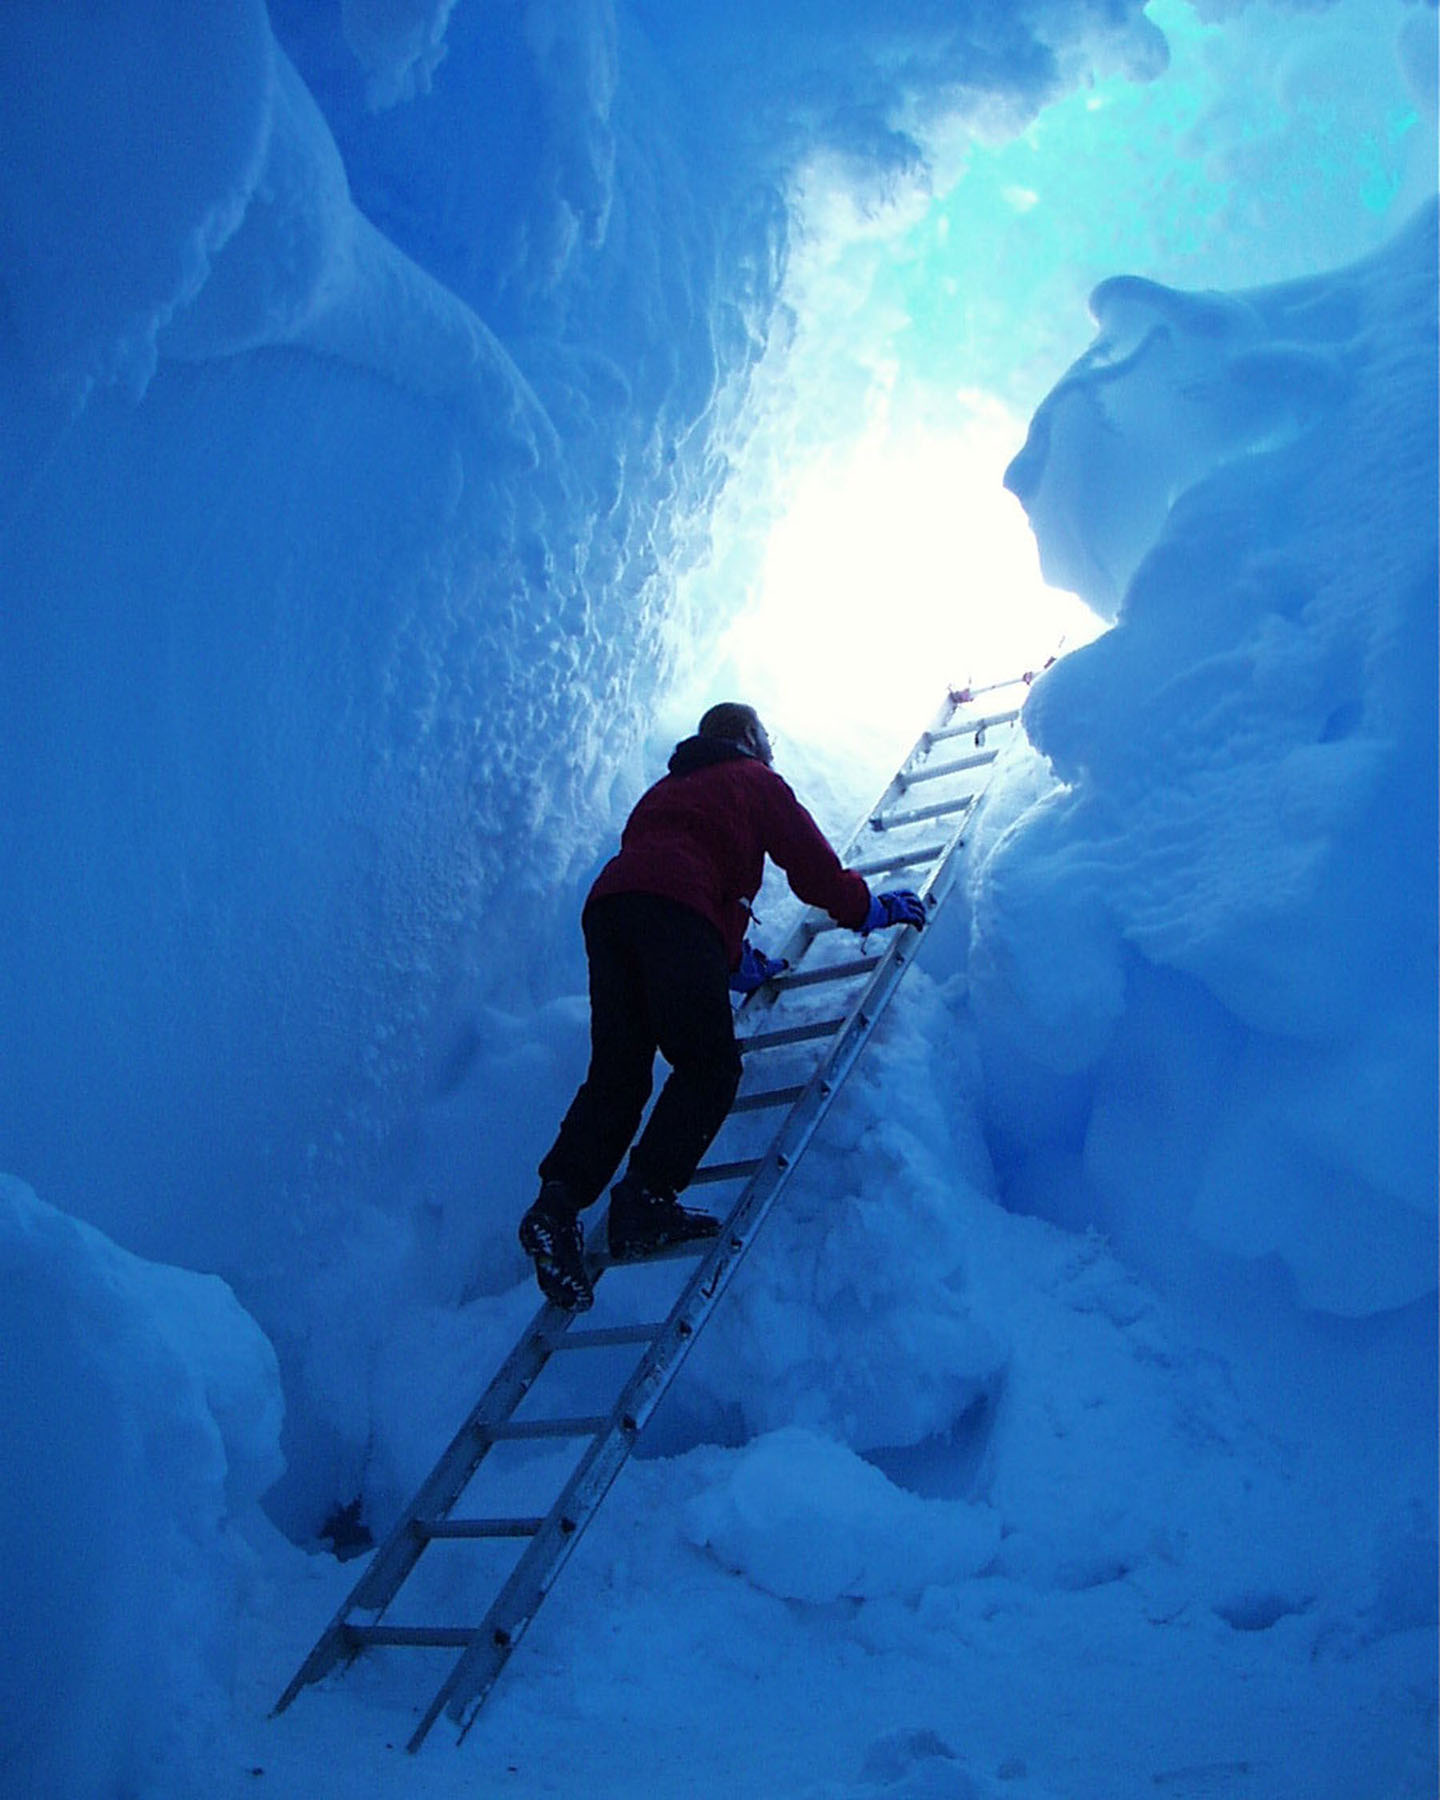 A person on a ladder in a bluish snow cave.